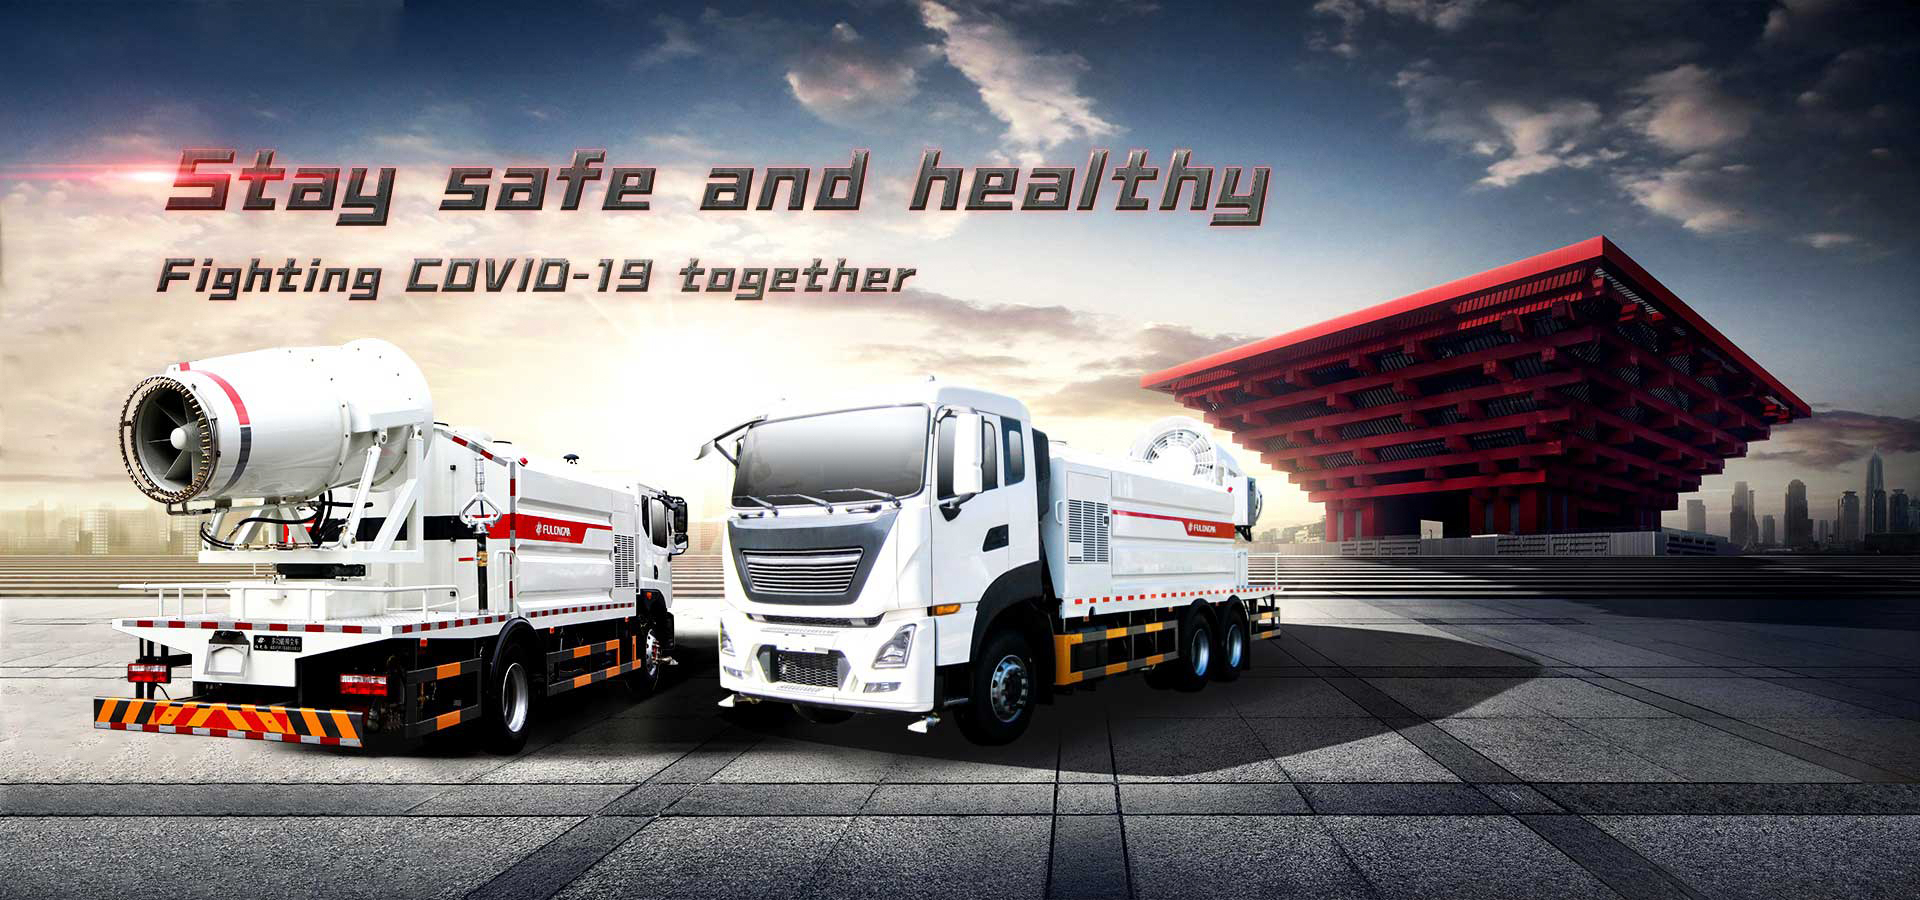 Multi-functional Dust Suppression Truck stay safe and healthy fighting COVID-19 together